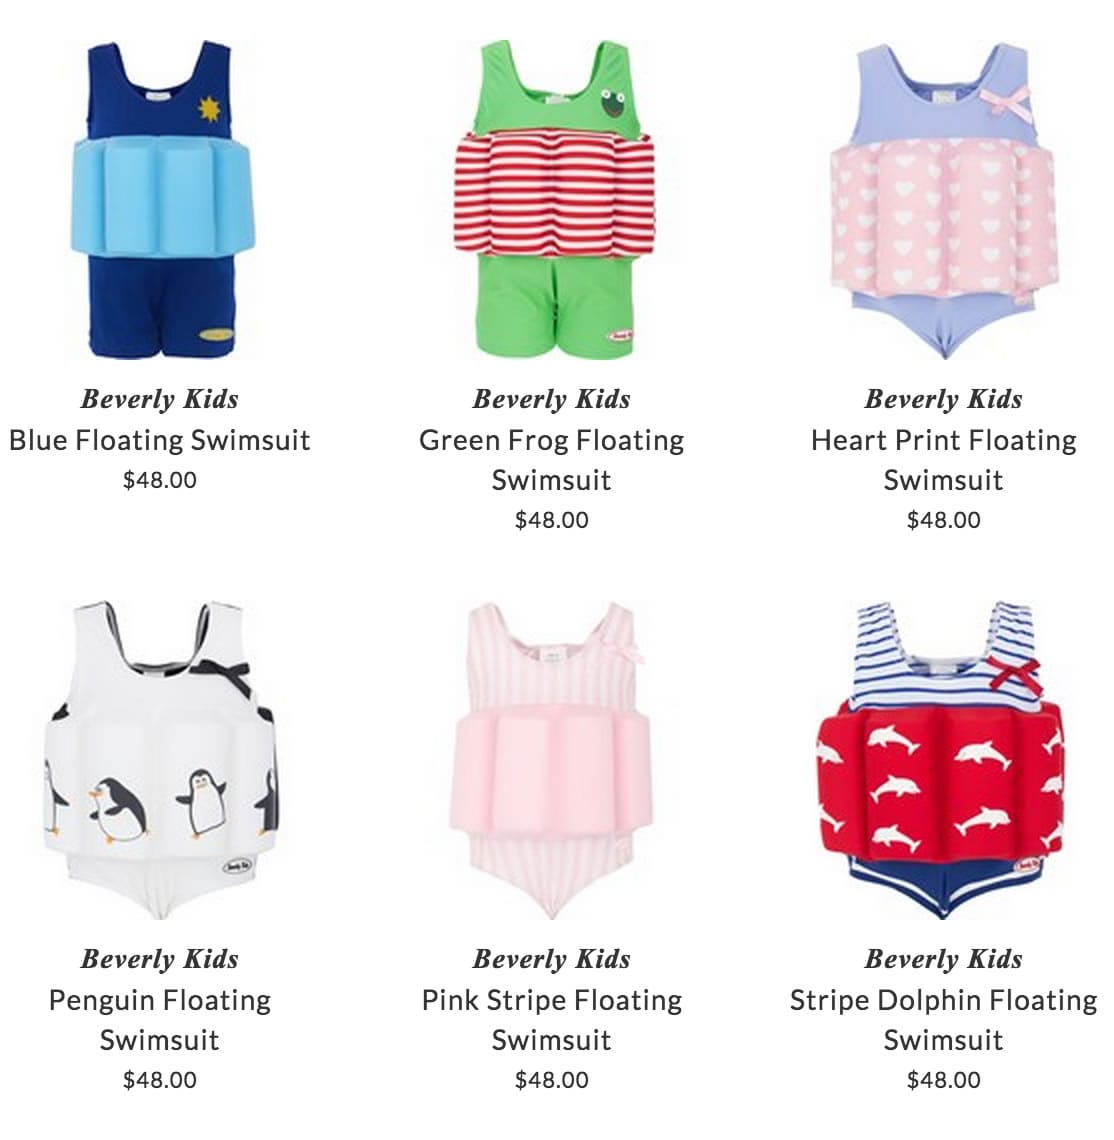 Beverly Kids swimwear